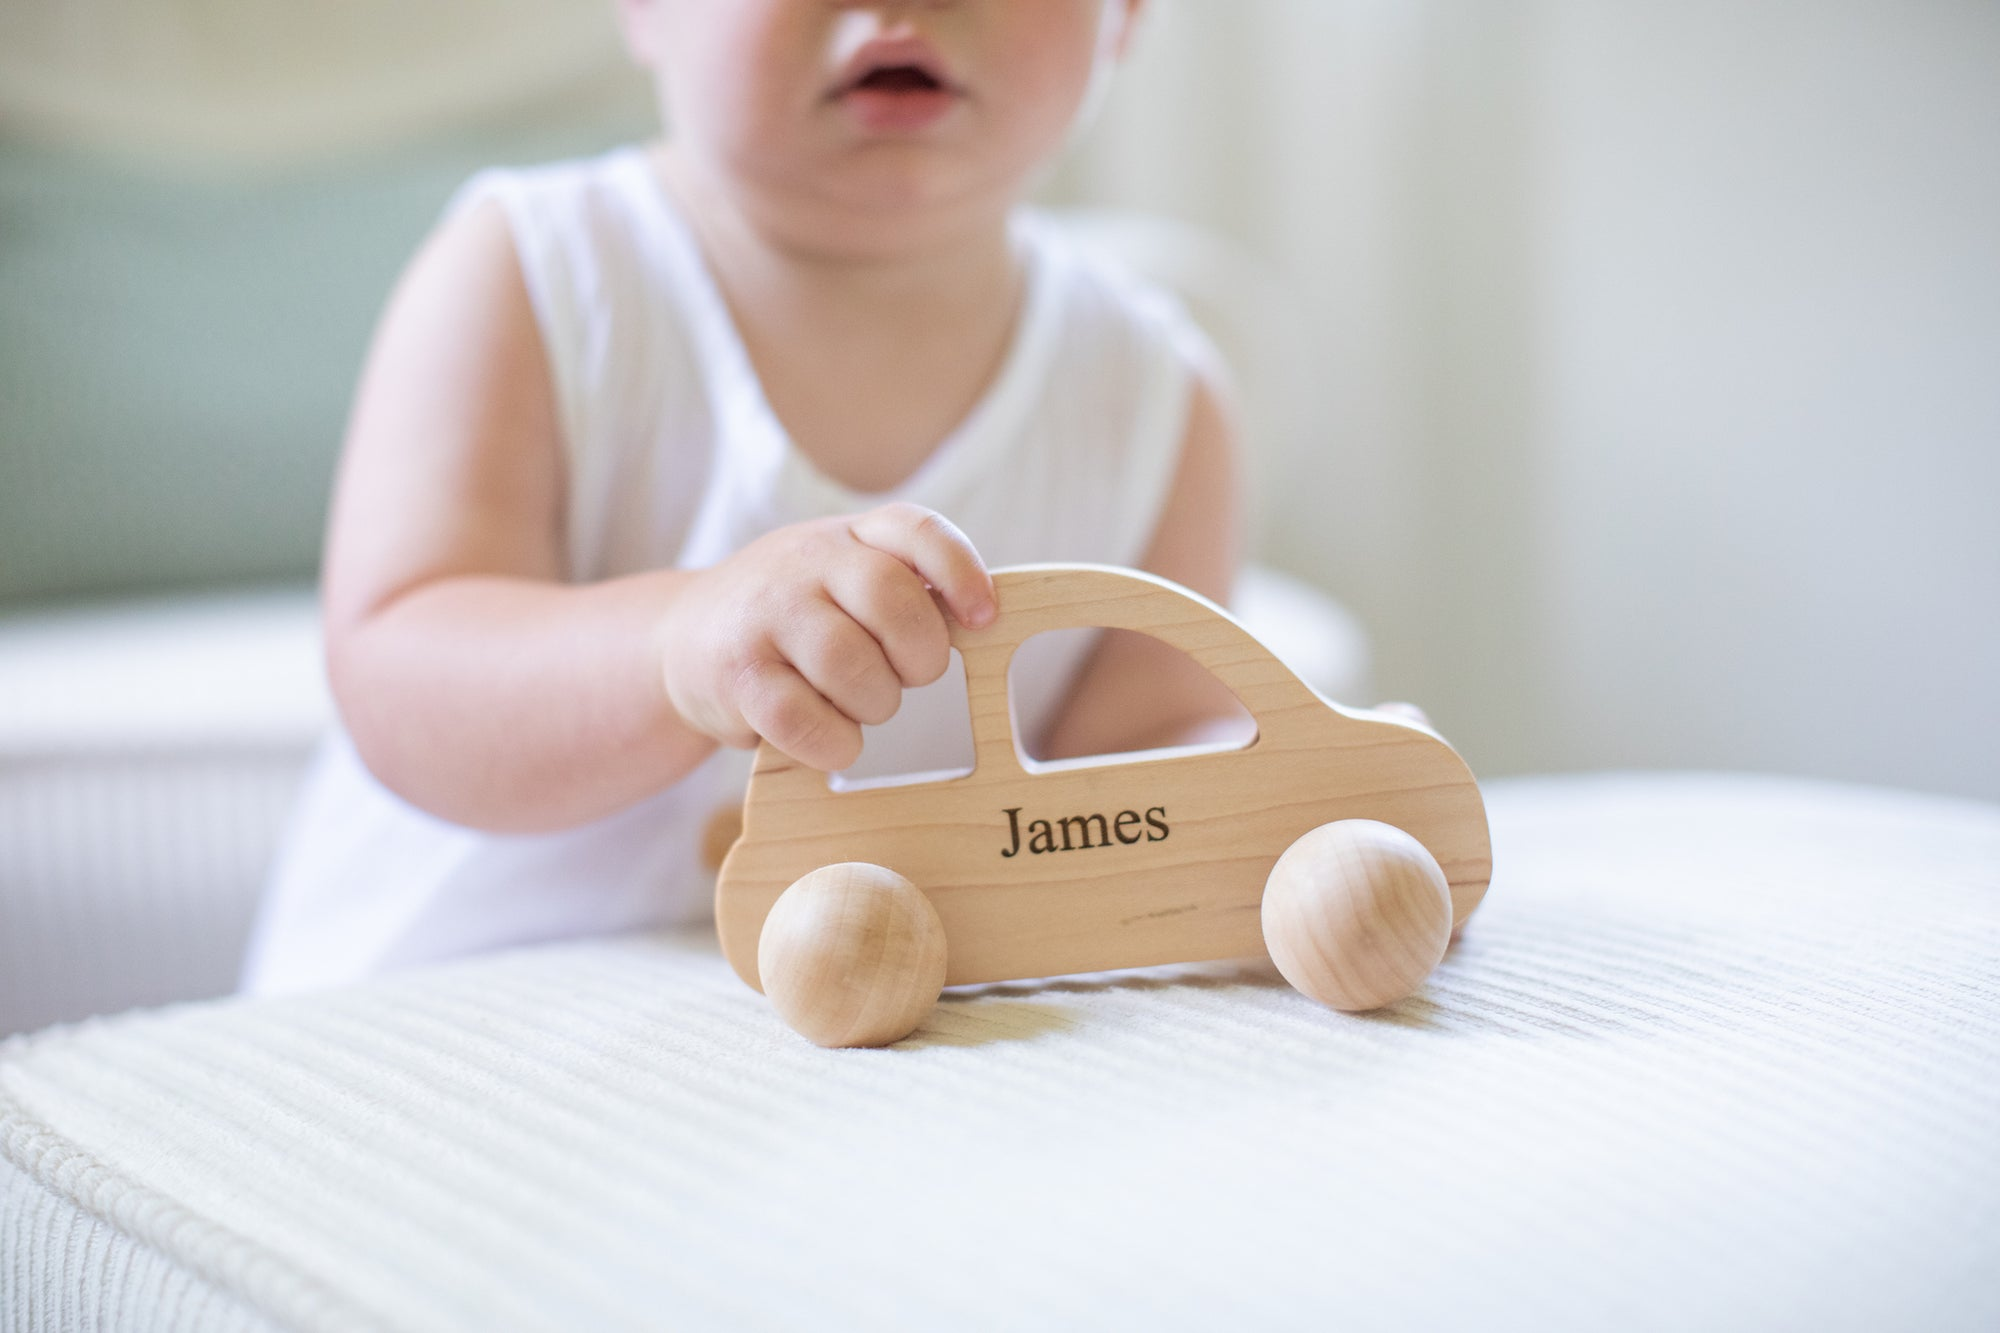 A little cute toddler boy holding a wooden toy car personalized with his name James on it.